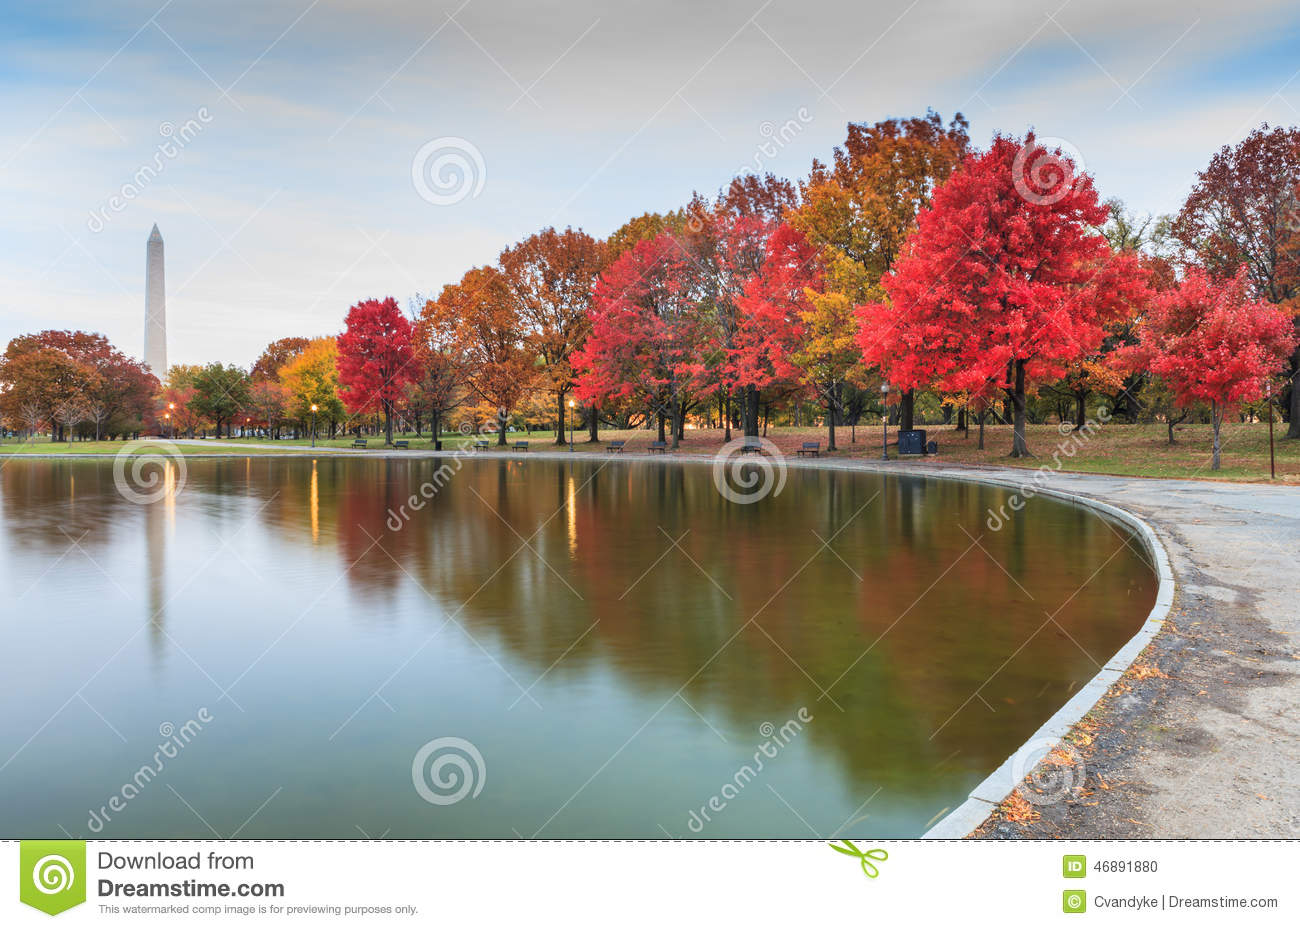 Washington DC Landmark Constitution Gardens In Autumn Stock Photo ...